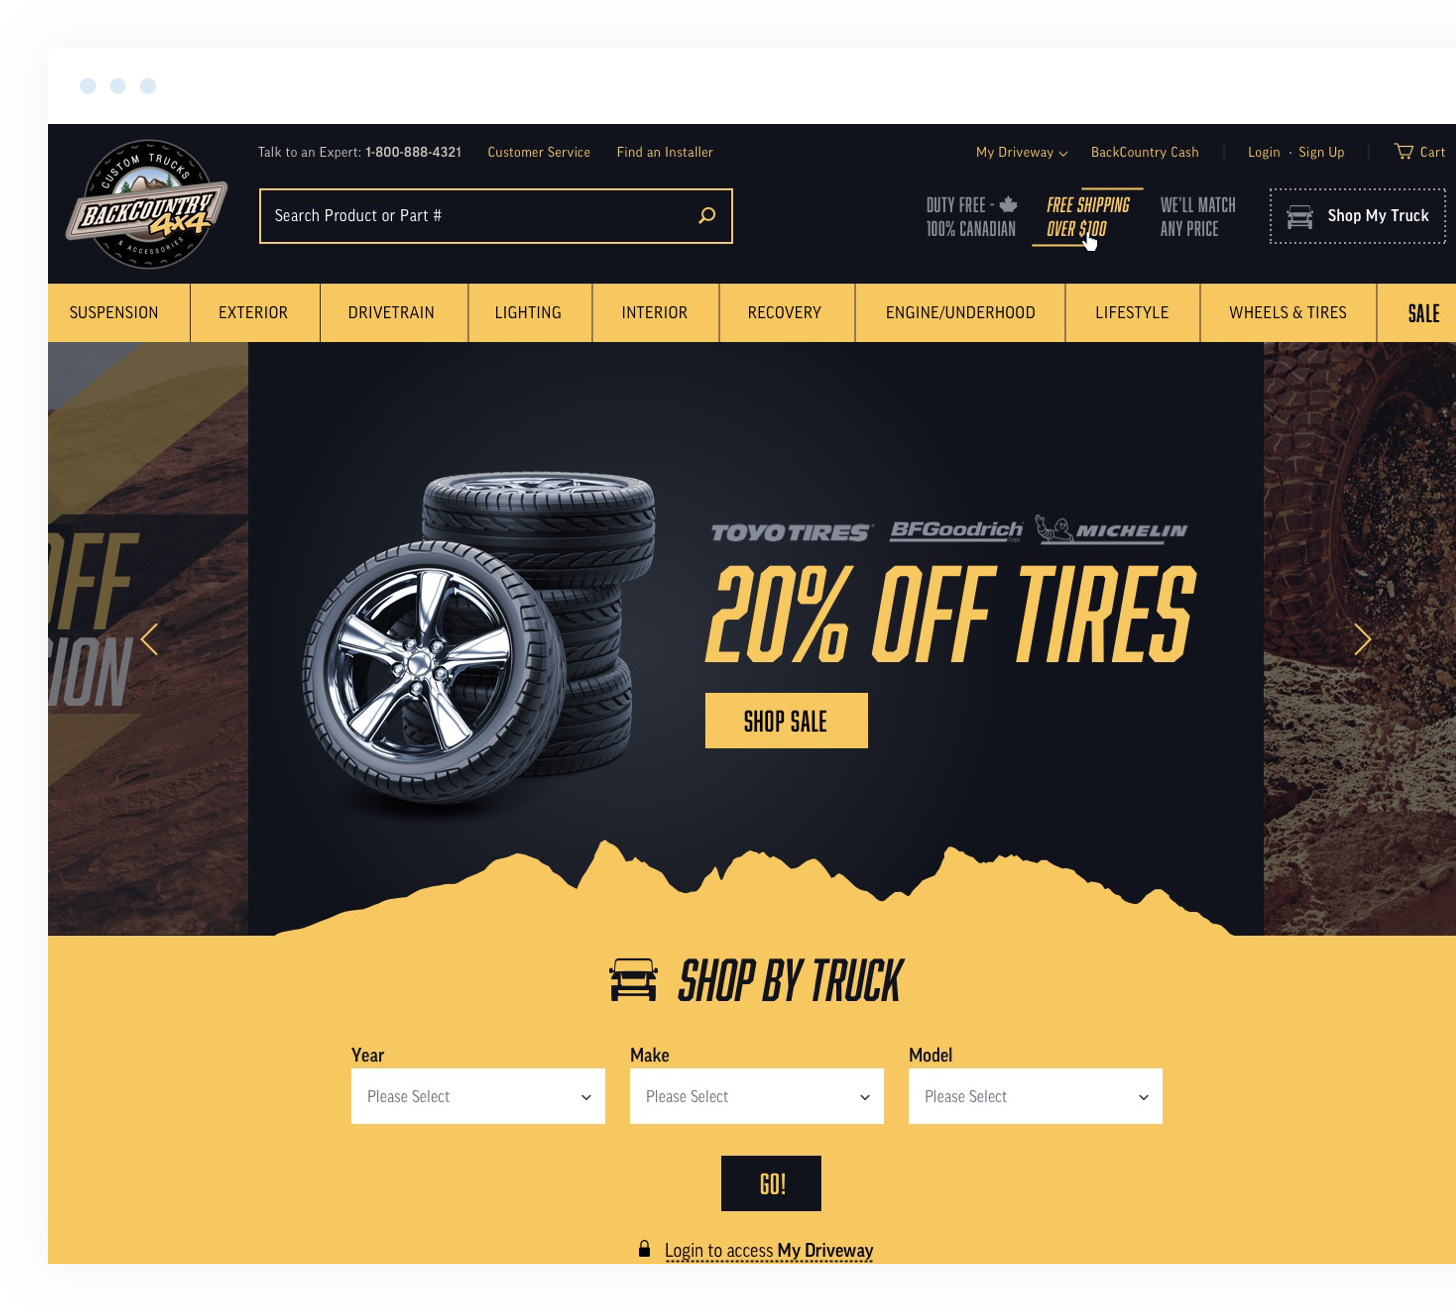 Back Country main page loaded, with the 20% off tires promo visible